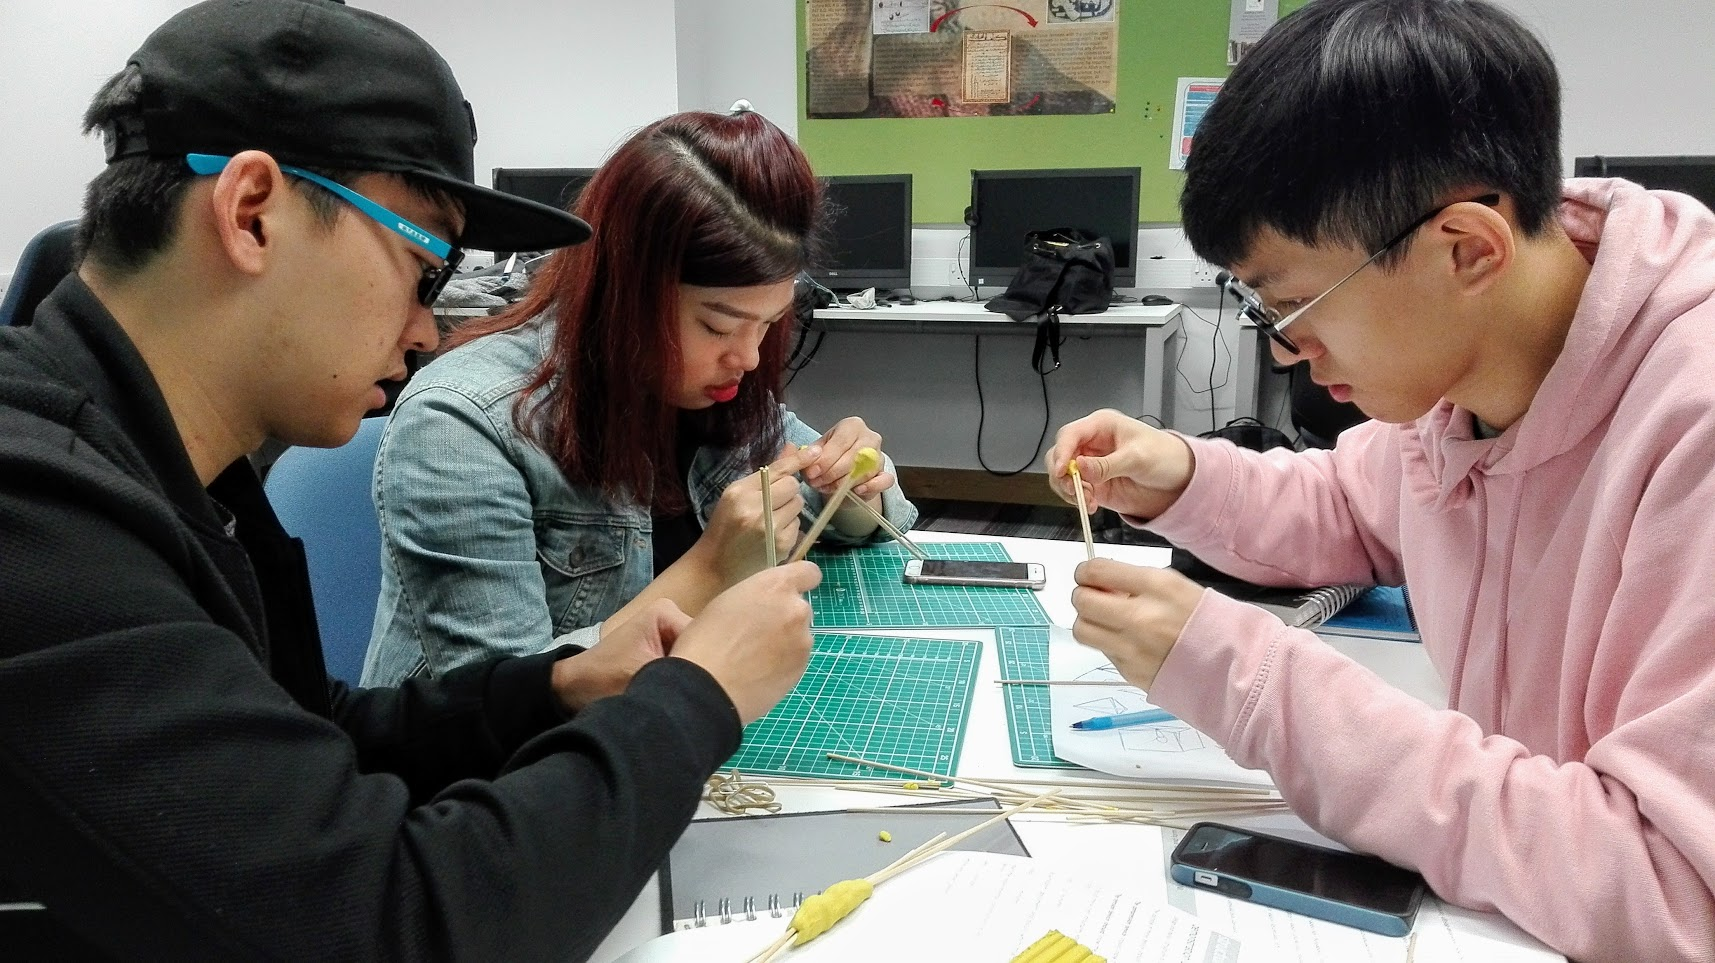 Students working on 3D models for architecture course